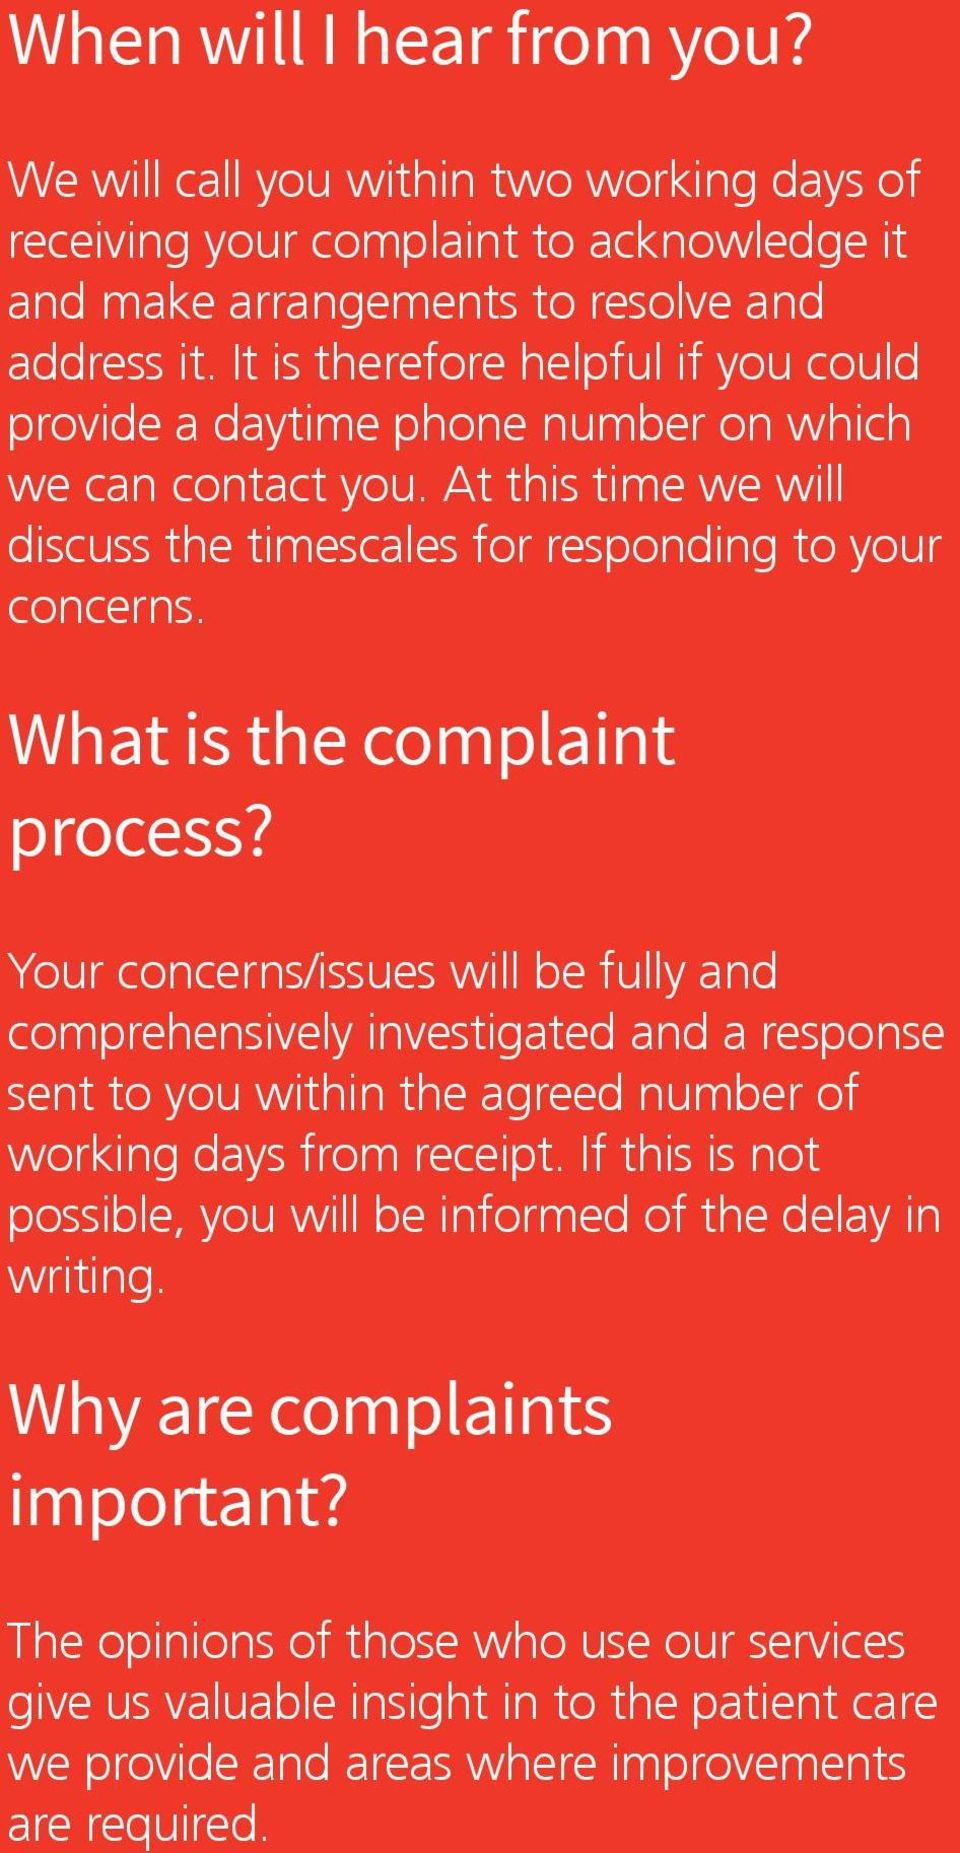 What is the complaint process? Your concerns/issues will be fully and comprehensively investigated and a response sent to you within the agreed number of working days from receipt.